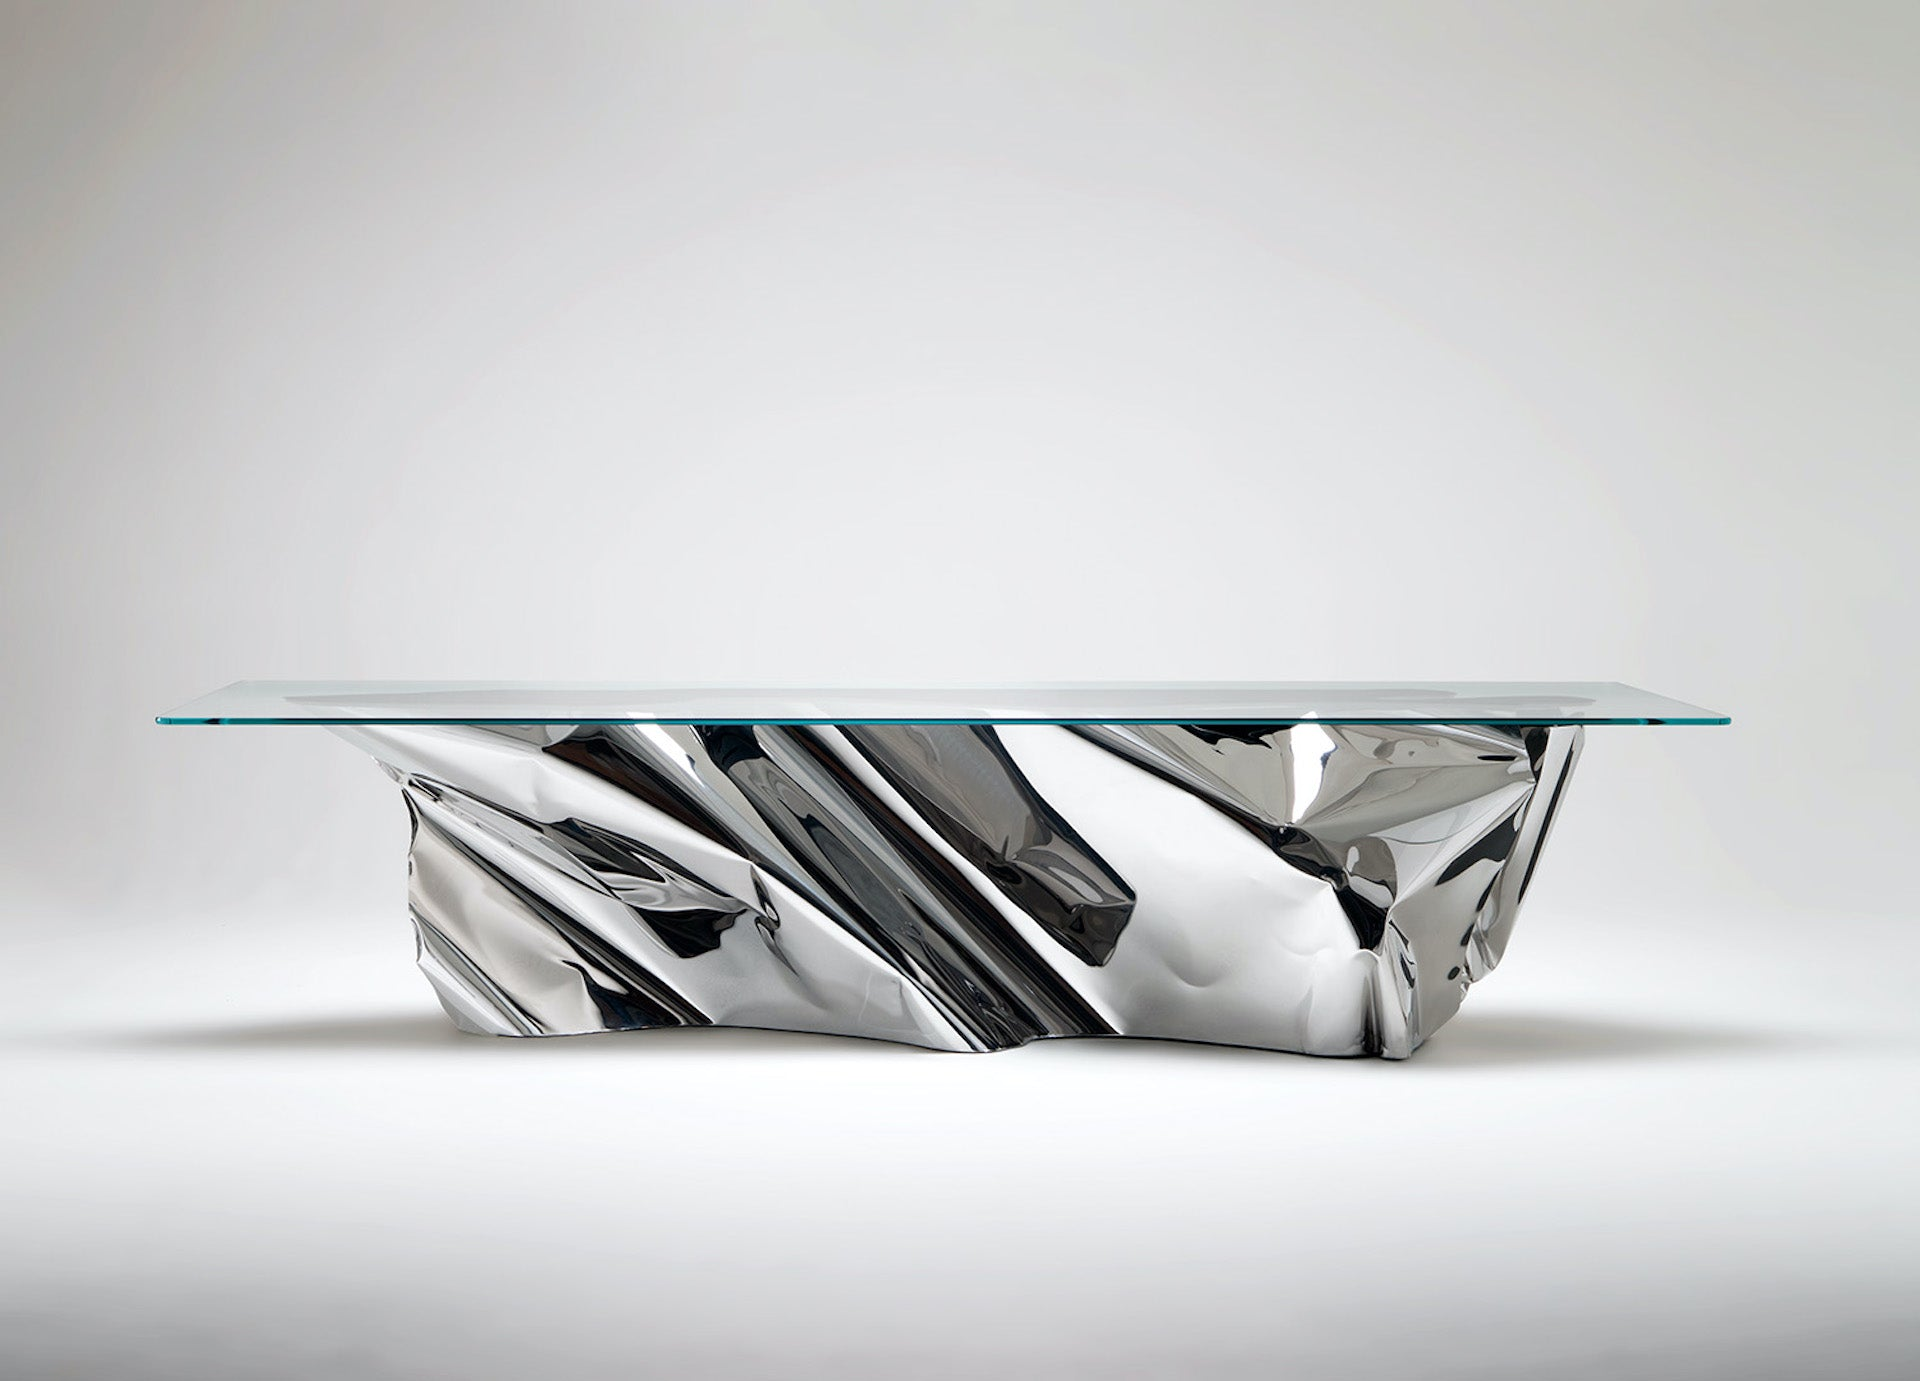 Dining Table Atlantic by Fredrikson Stallard for David Gill Gallery, 2013; Edition of 20 + 2P. Photo © David Gill Gallery